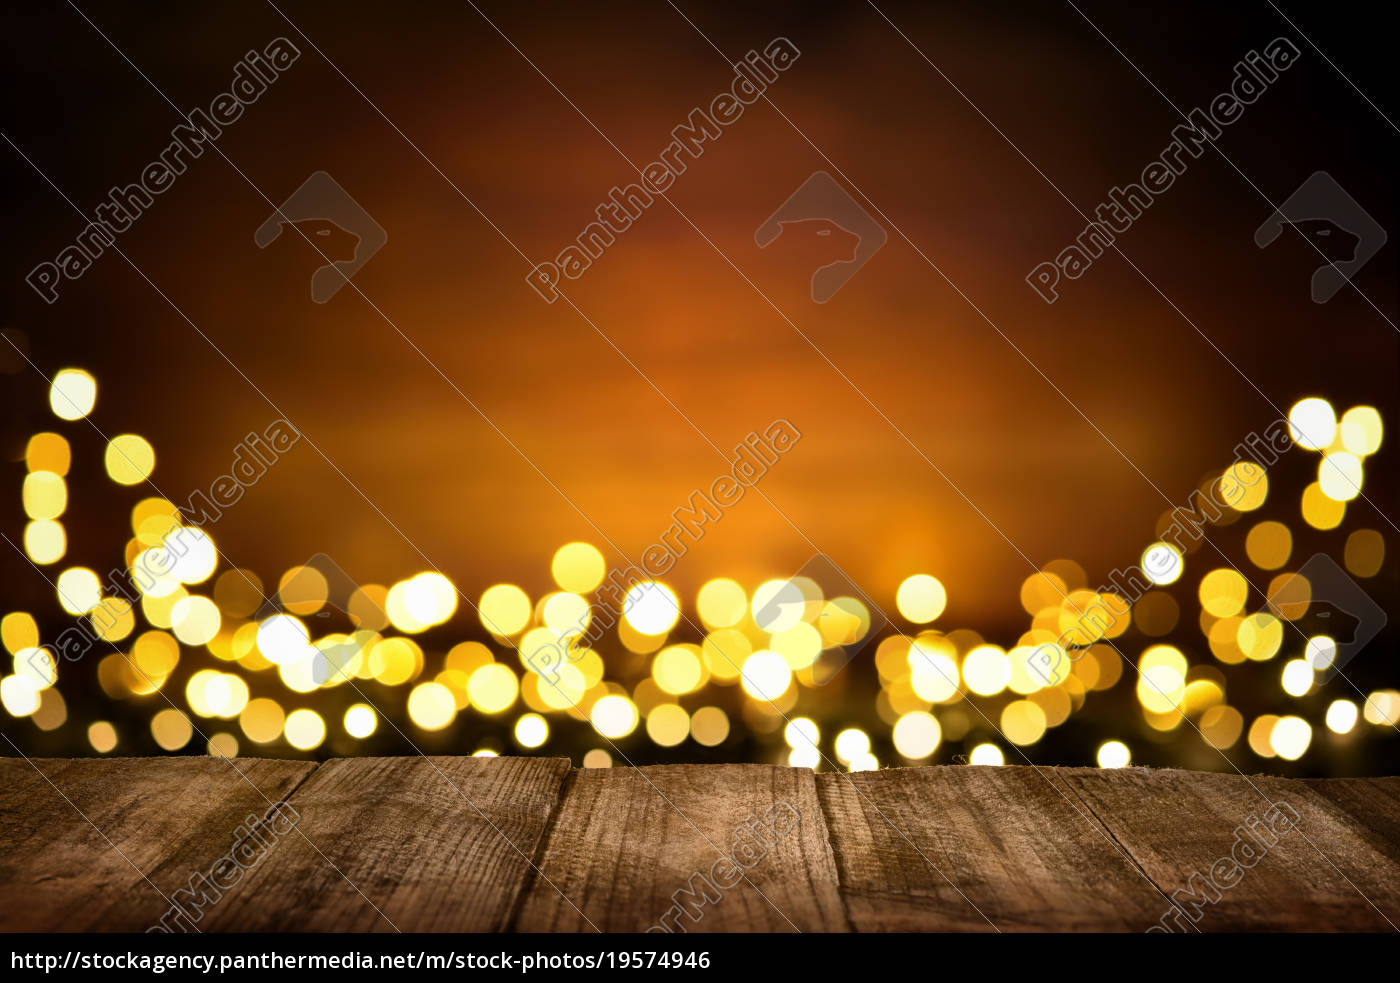 festive, background, of, wood, and, lights, warm - 19574946